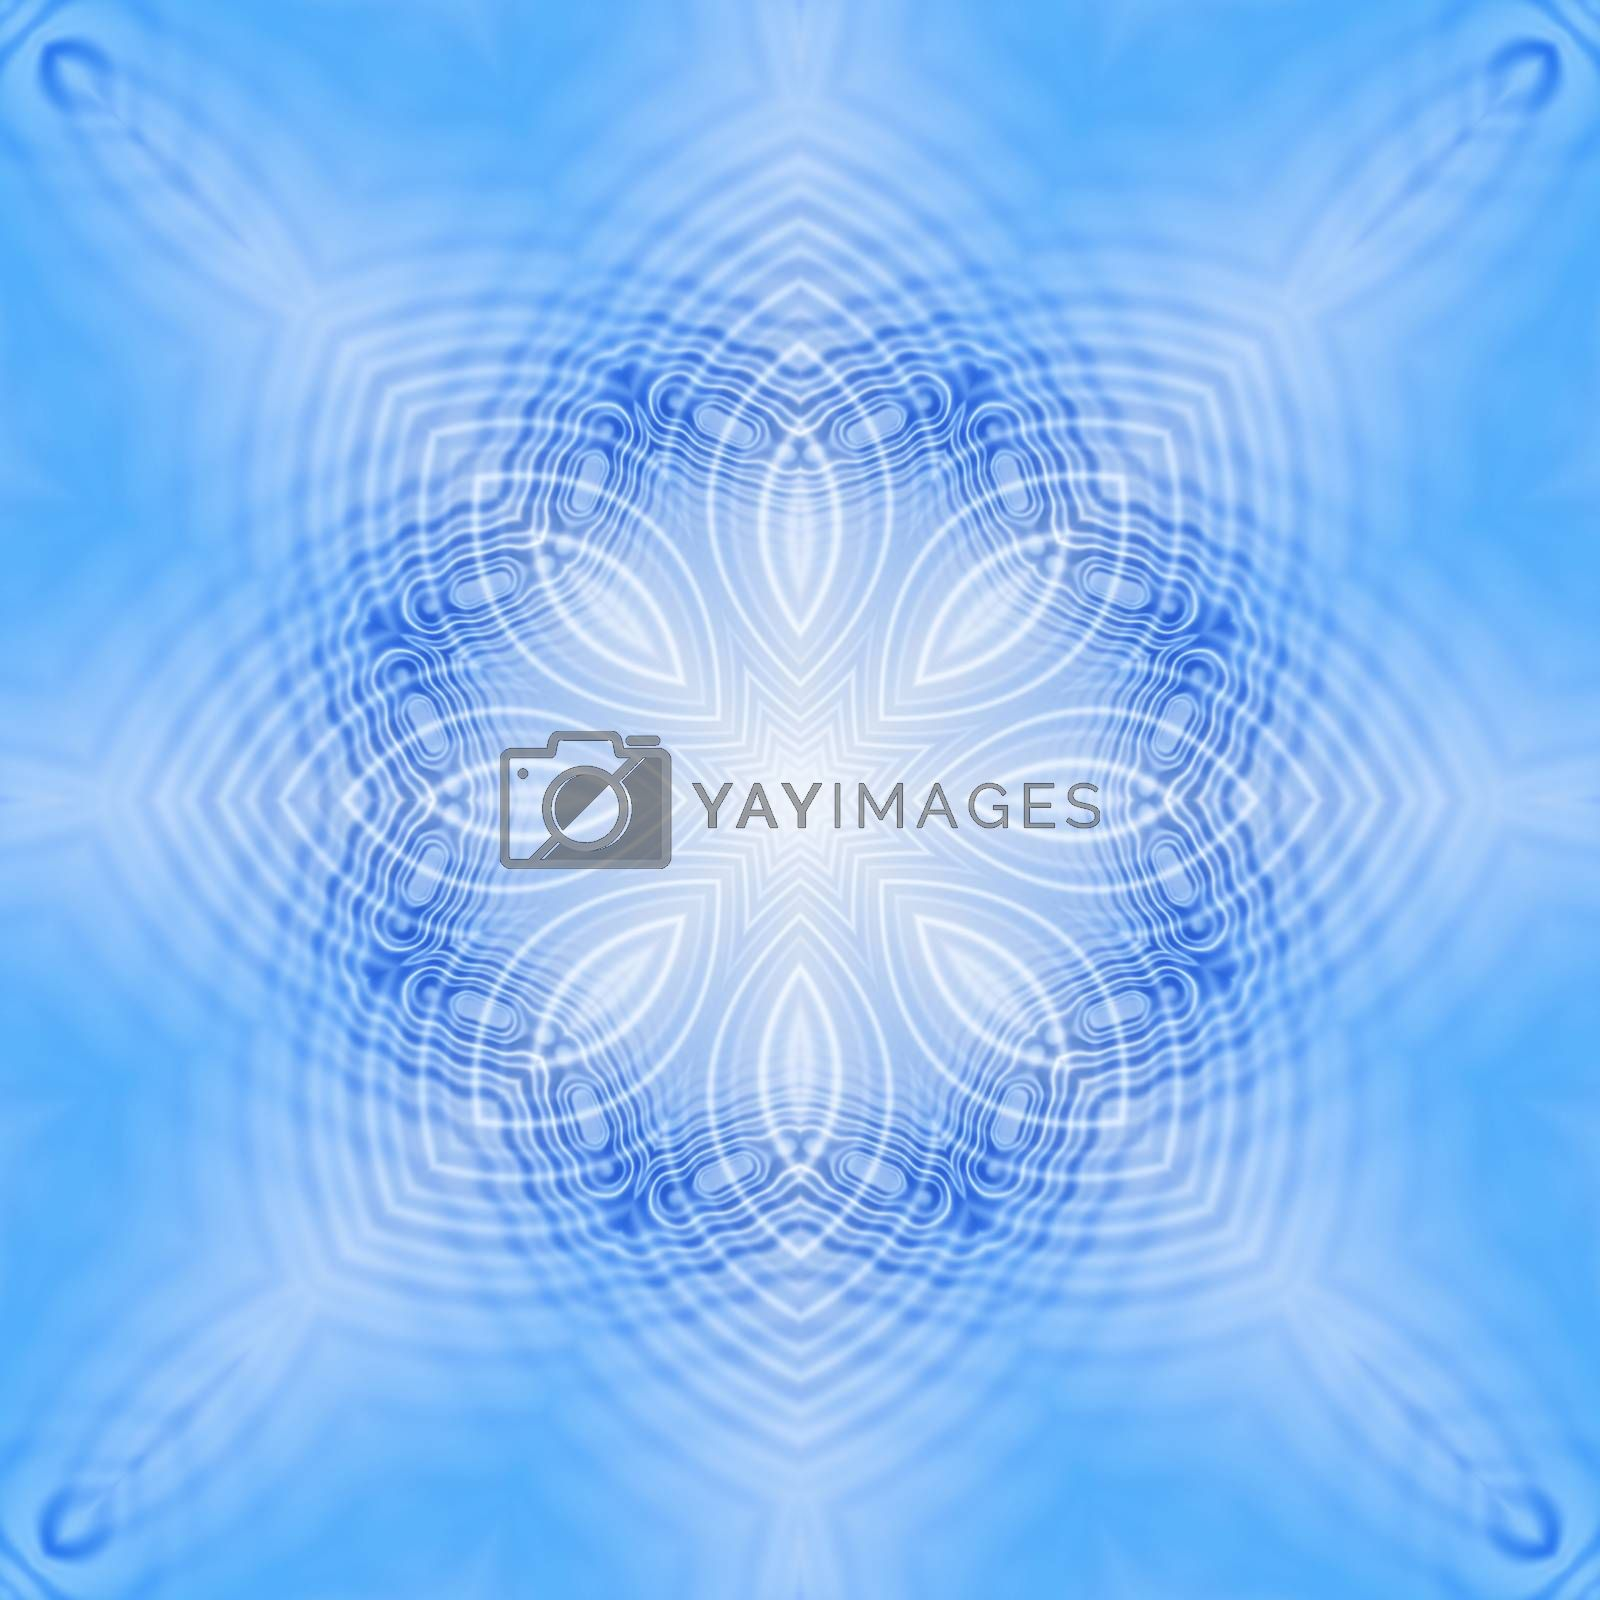 Royalty free image of Abstract pattern by dink101